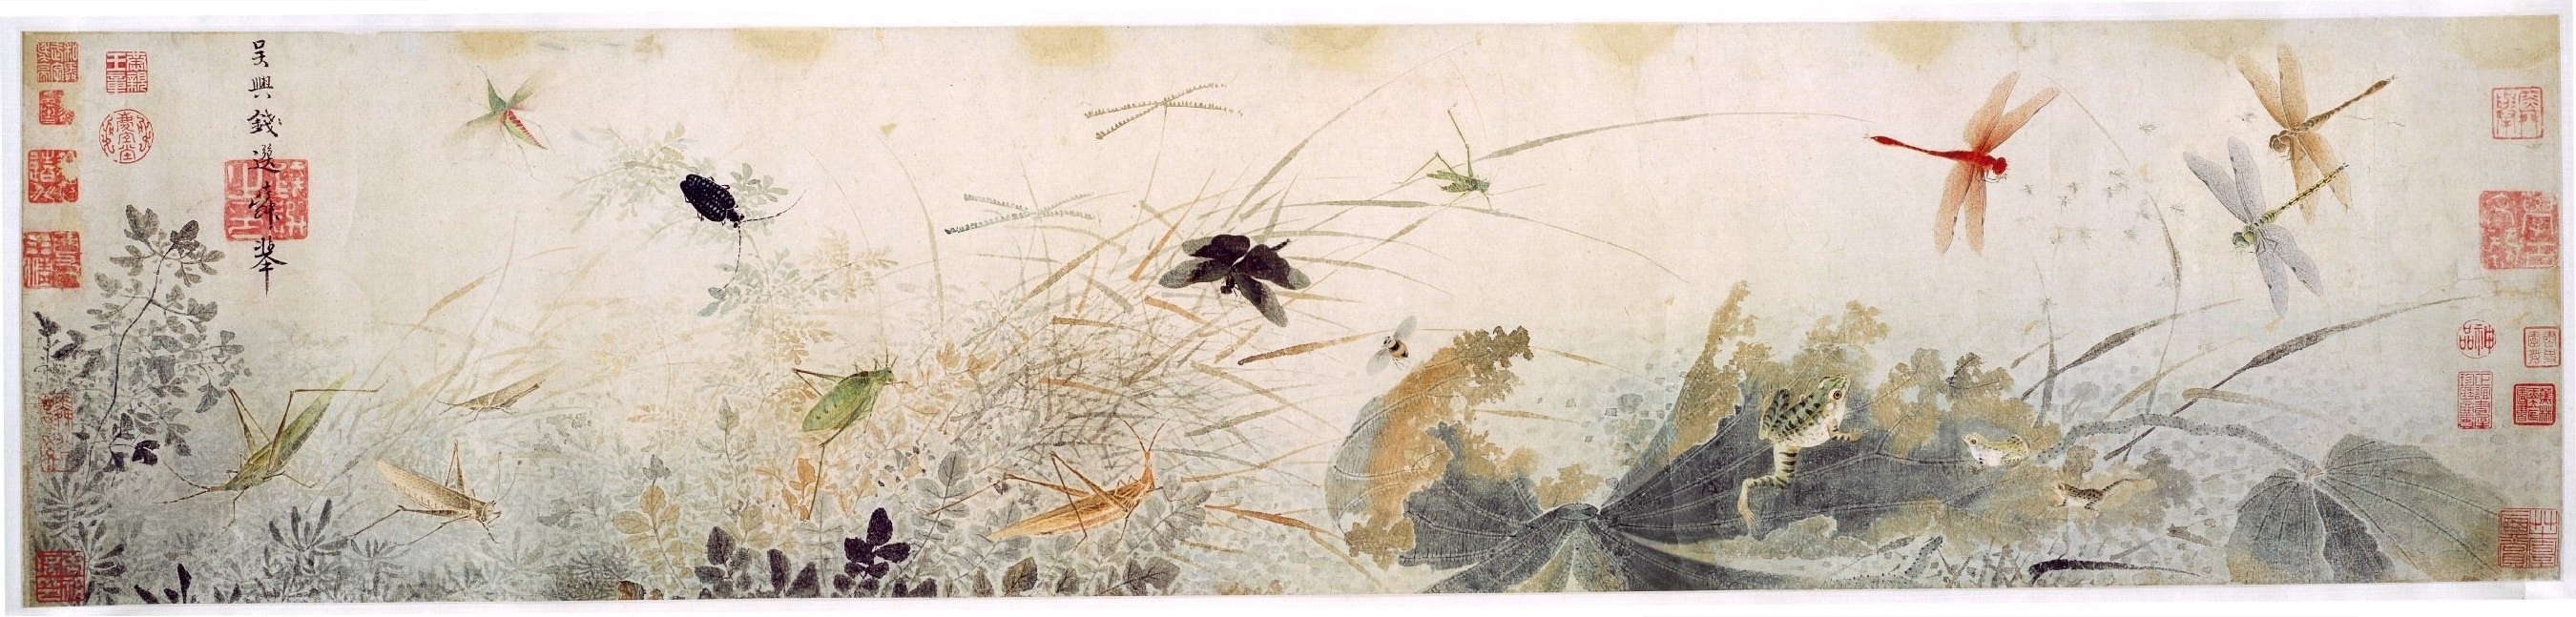 Chinese Artwork Pics, Artistic Collection